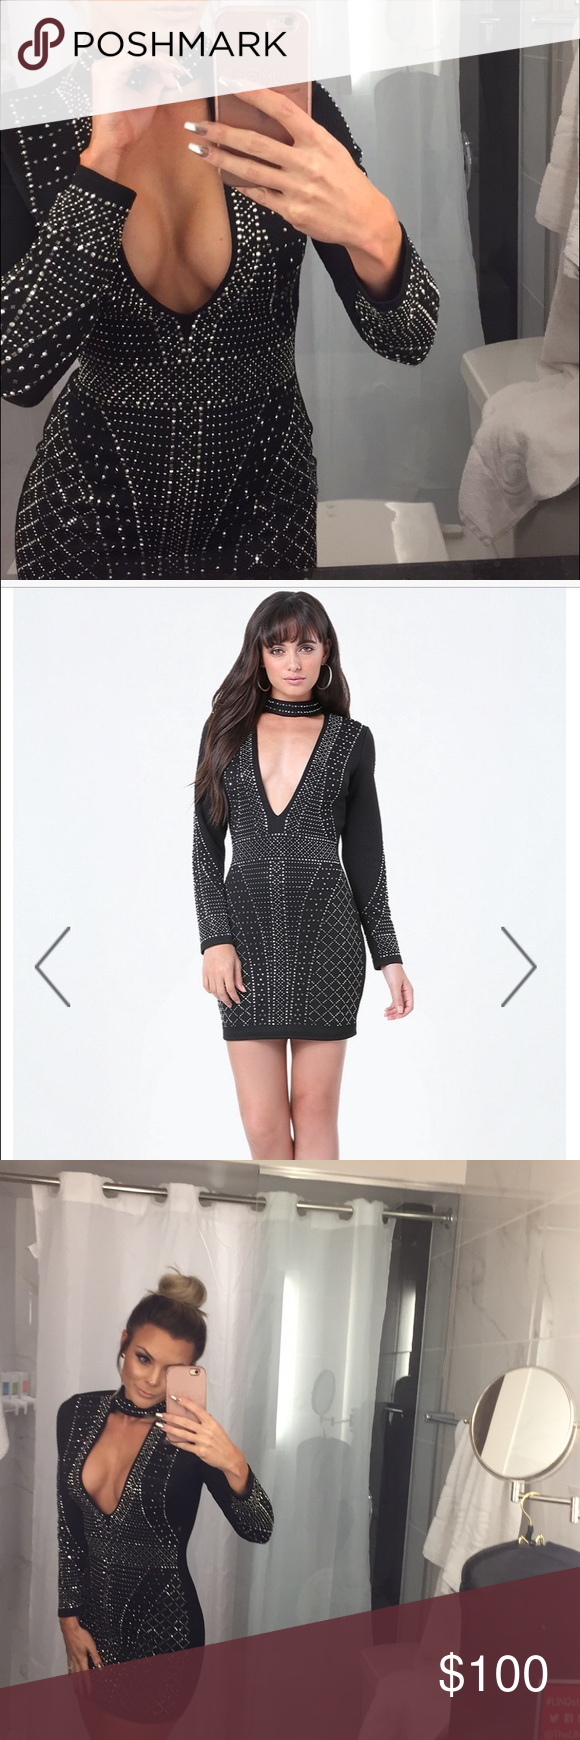 Bebe Alexa Embellished Choker Dress Size Small Bebe dress. Tags attached, tried on. Perfect condition! Really nice quality and thick quilted material. Perfect for winter to keep you warmer! Studs and stones are silver toned. Purchase price $198 bebe Dresses Mini